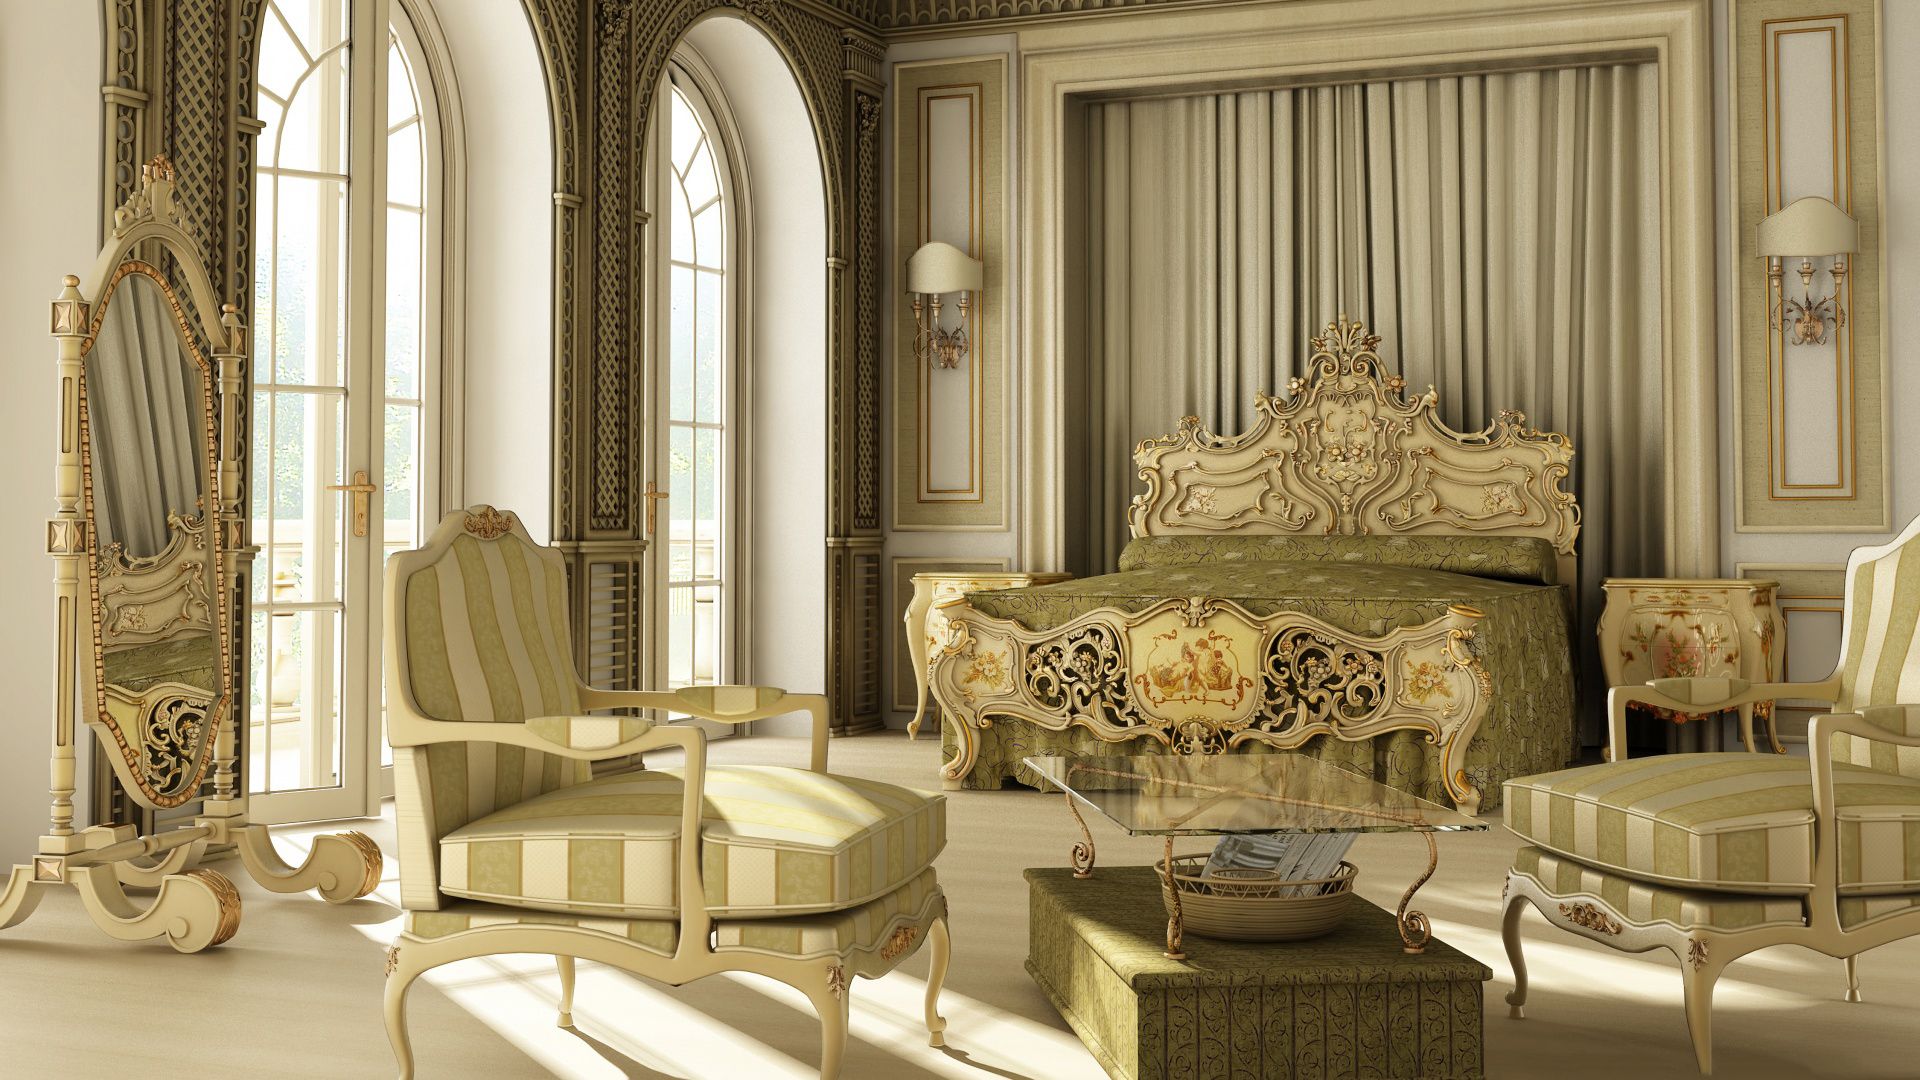 download wallpaper mirror interior bedroom luxury rococo